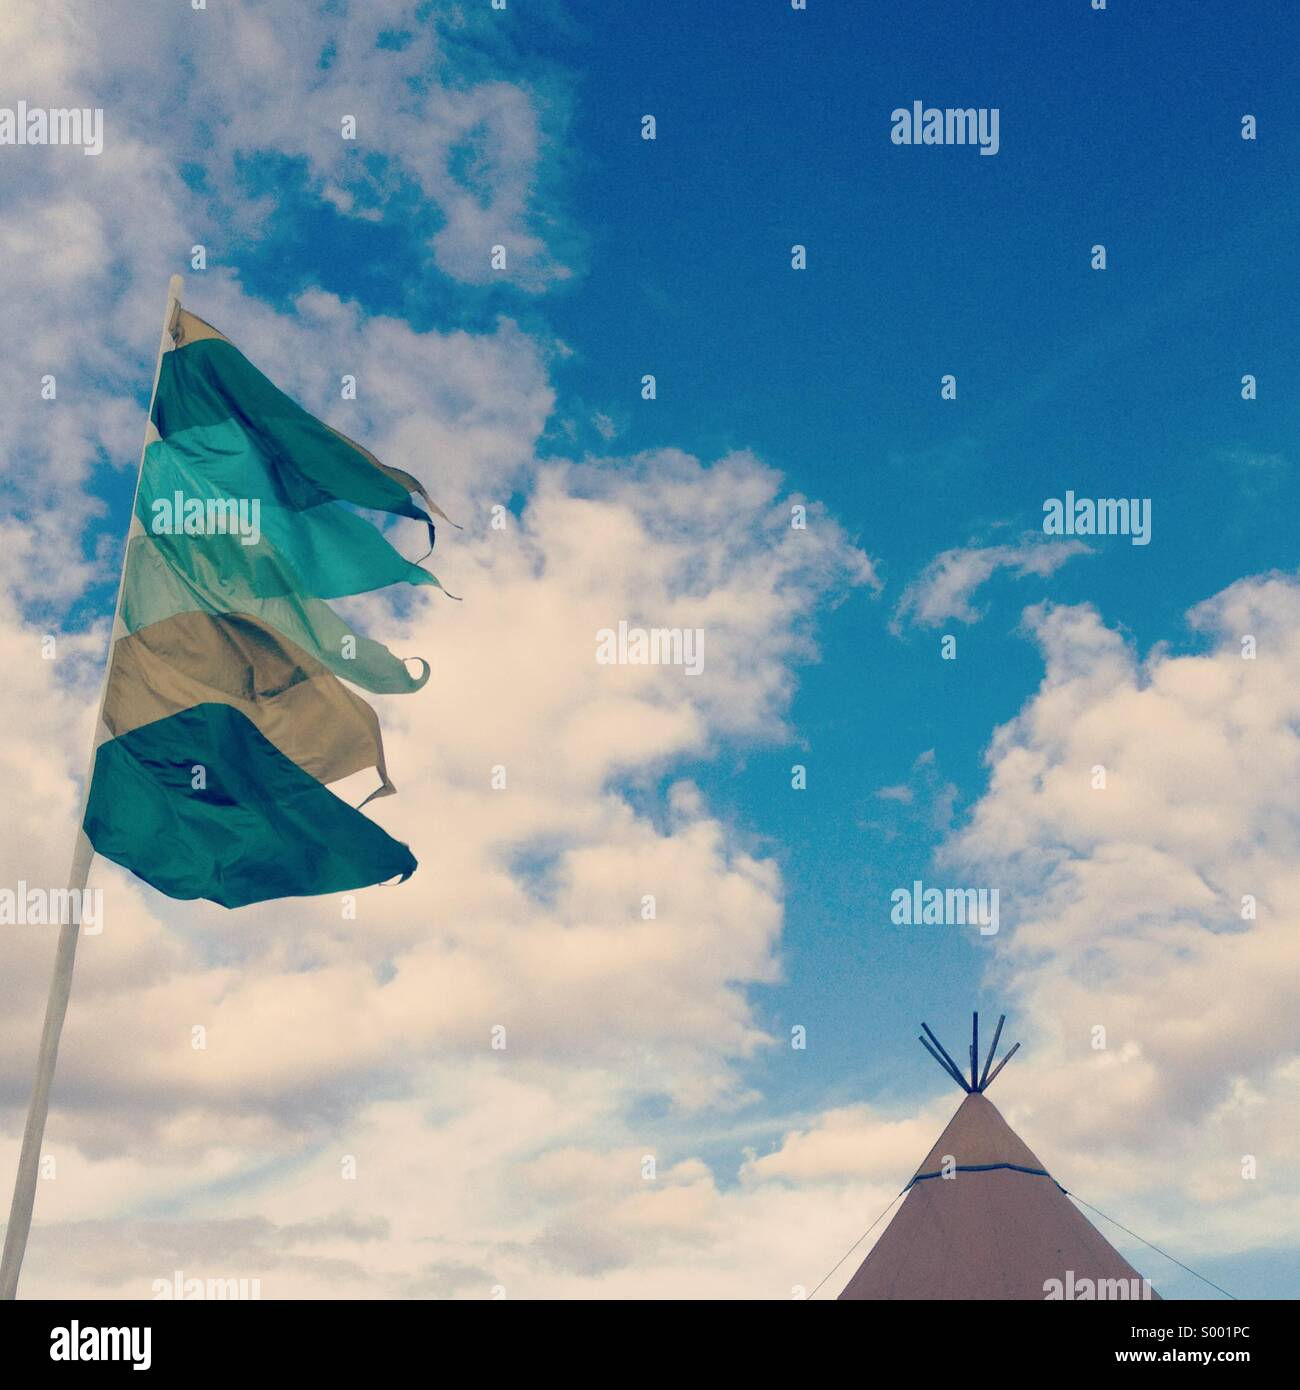 Tent and flags at a festival - Stock Image